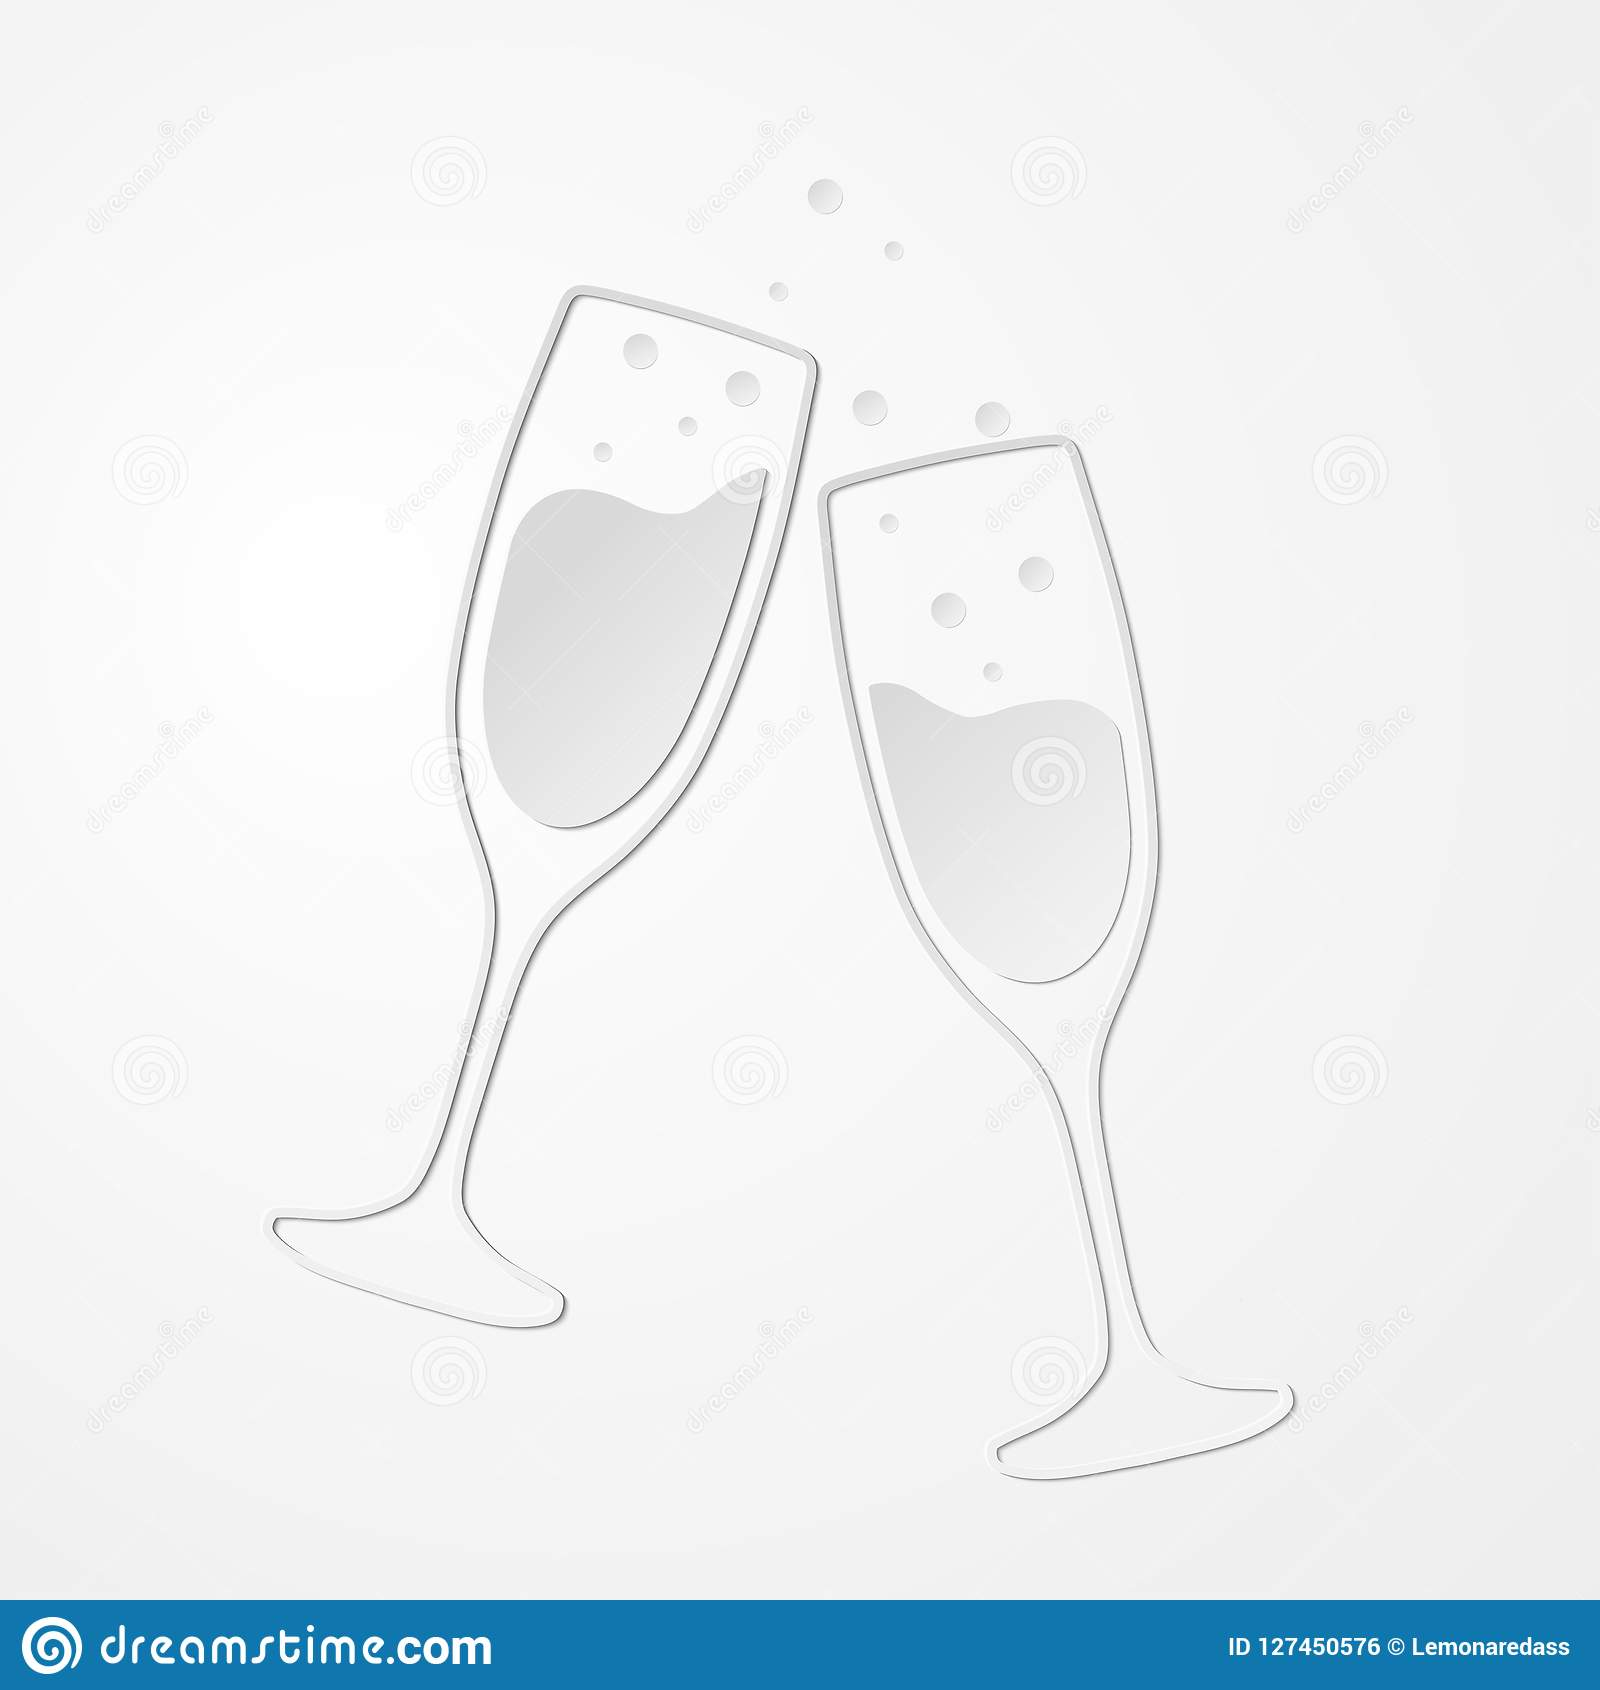 Champagne glasses vector icon with shadow. Paper style